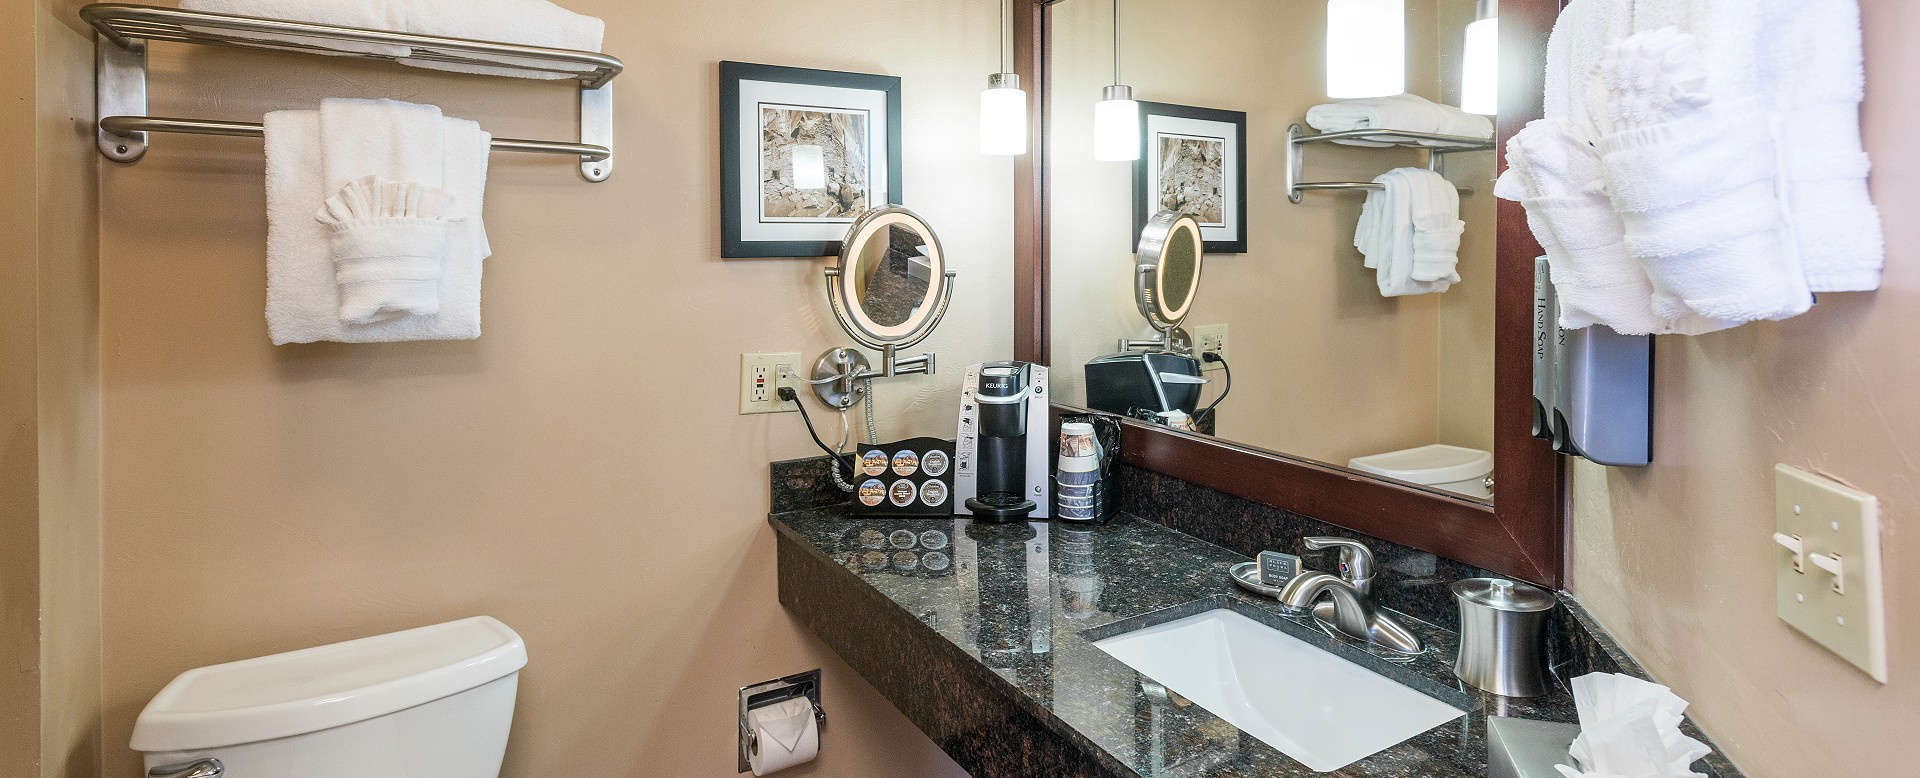 Best Western Plus Inn of Sedona-Guest Bathroom